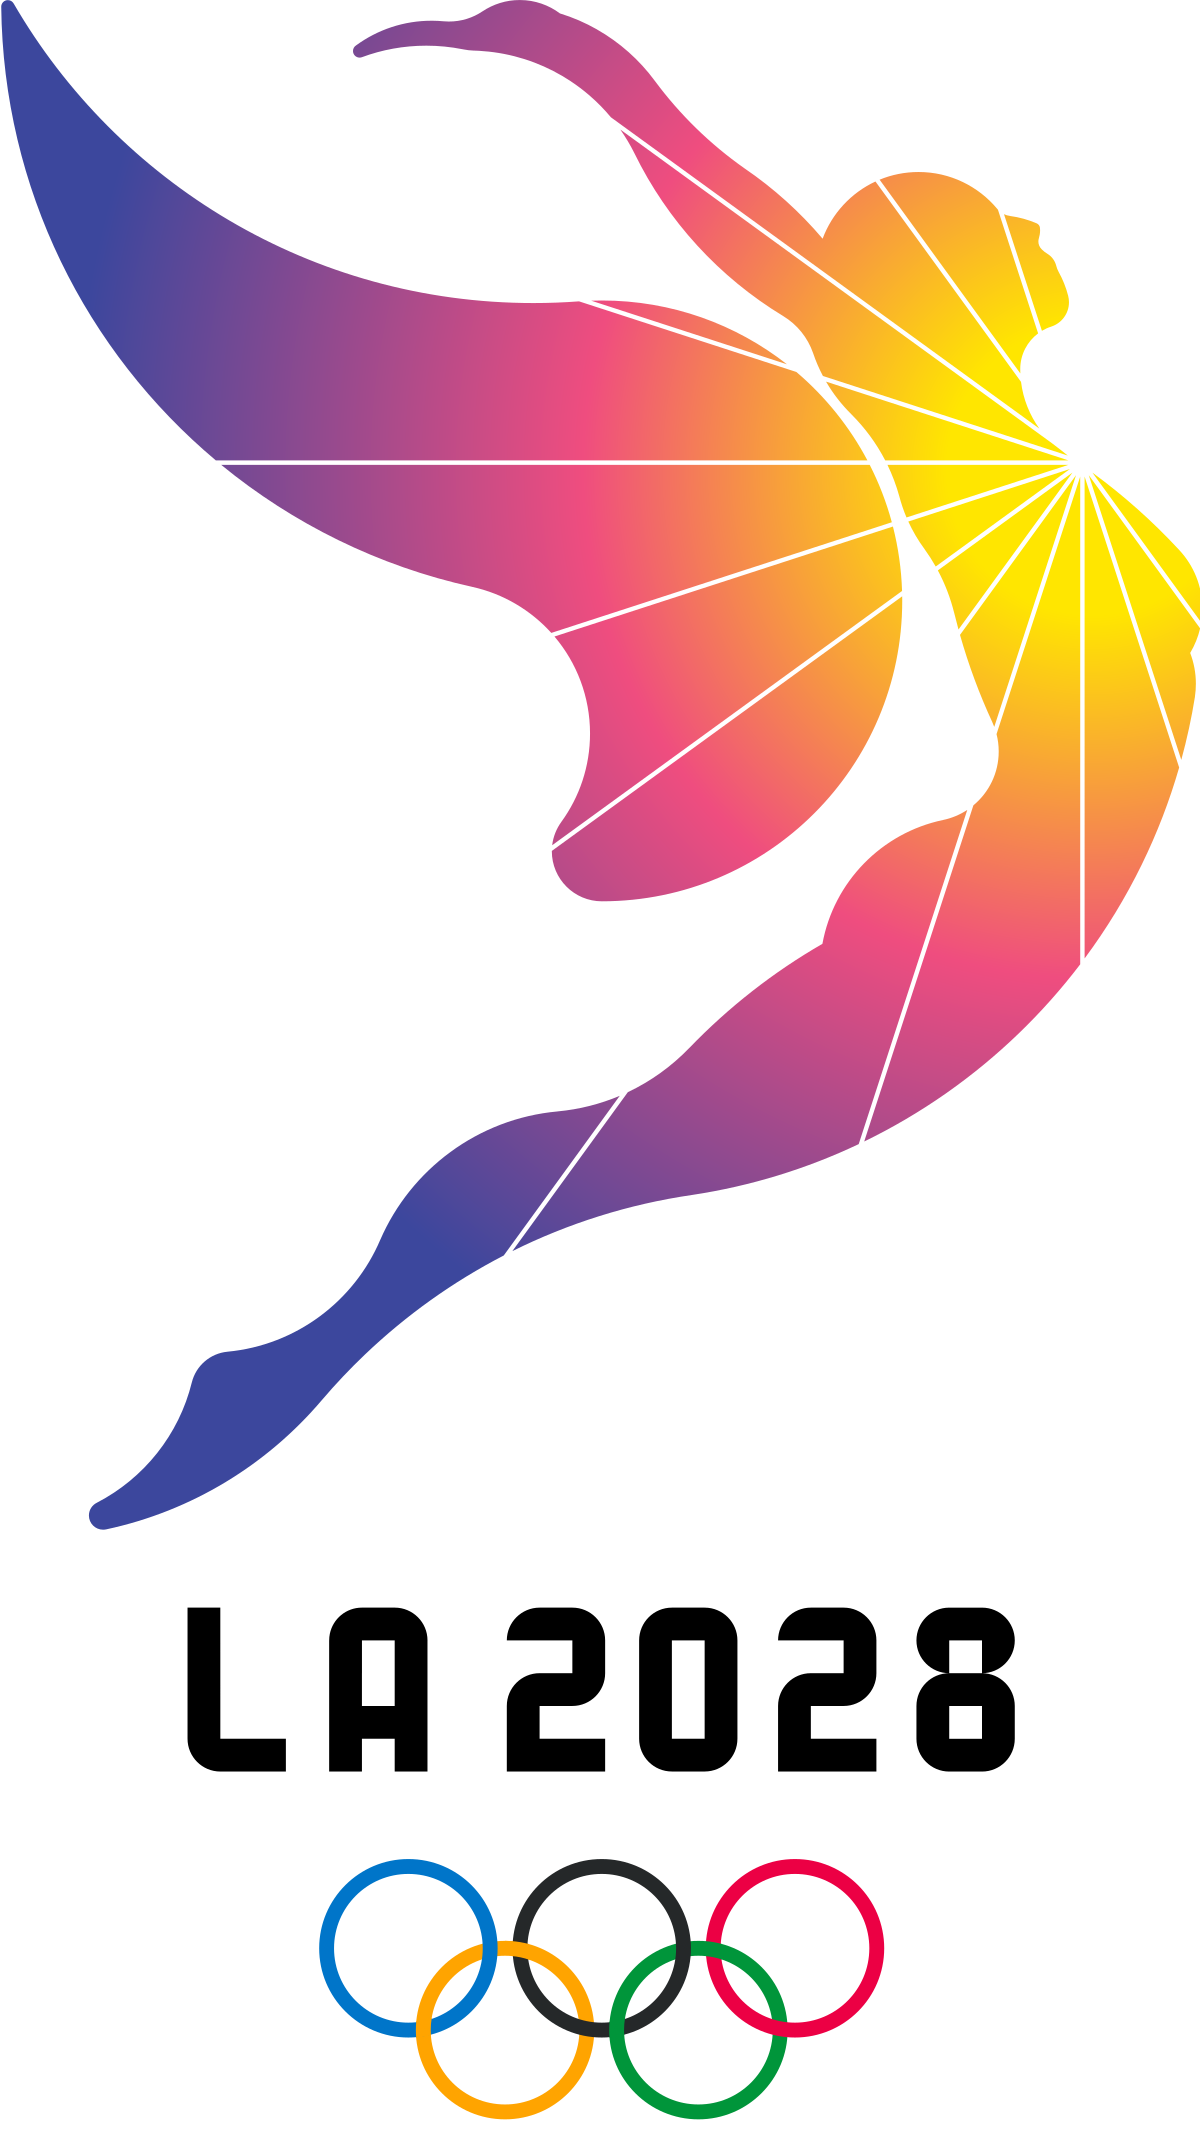 L&a construction clipart picture 2028 Summer Olympics - Wikipedia picture